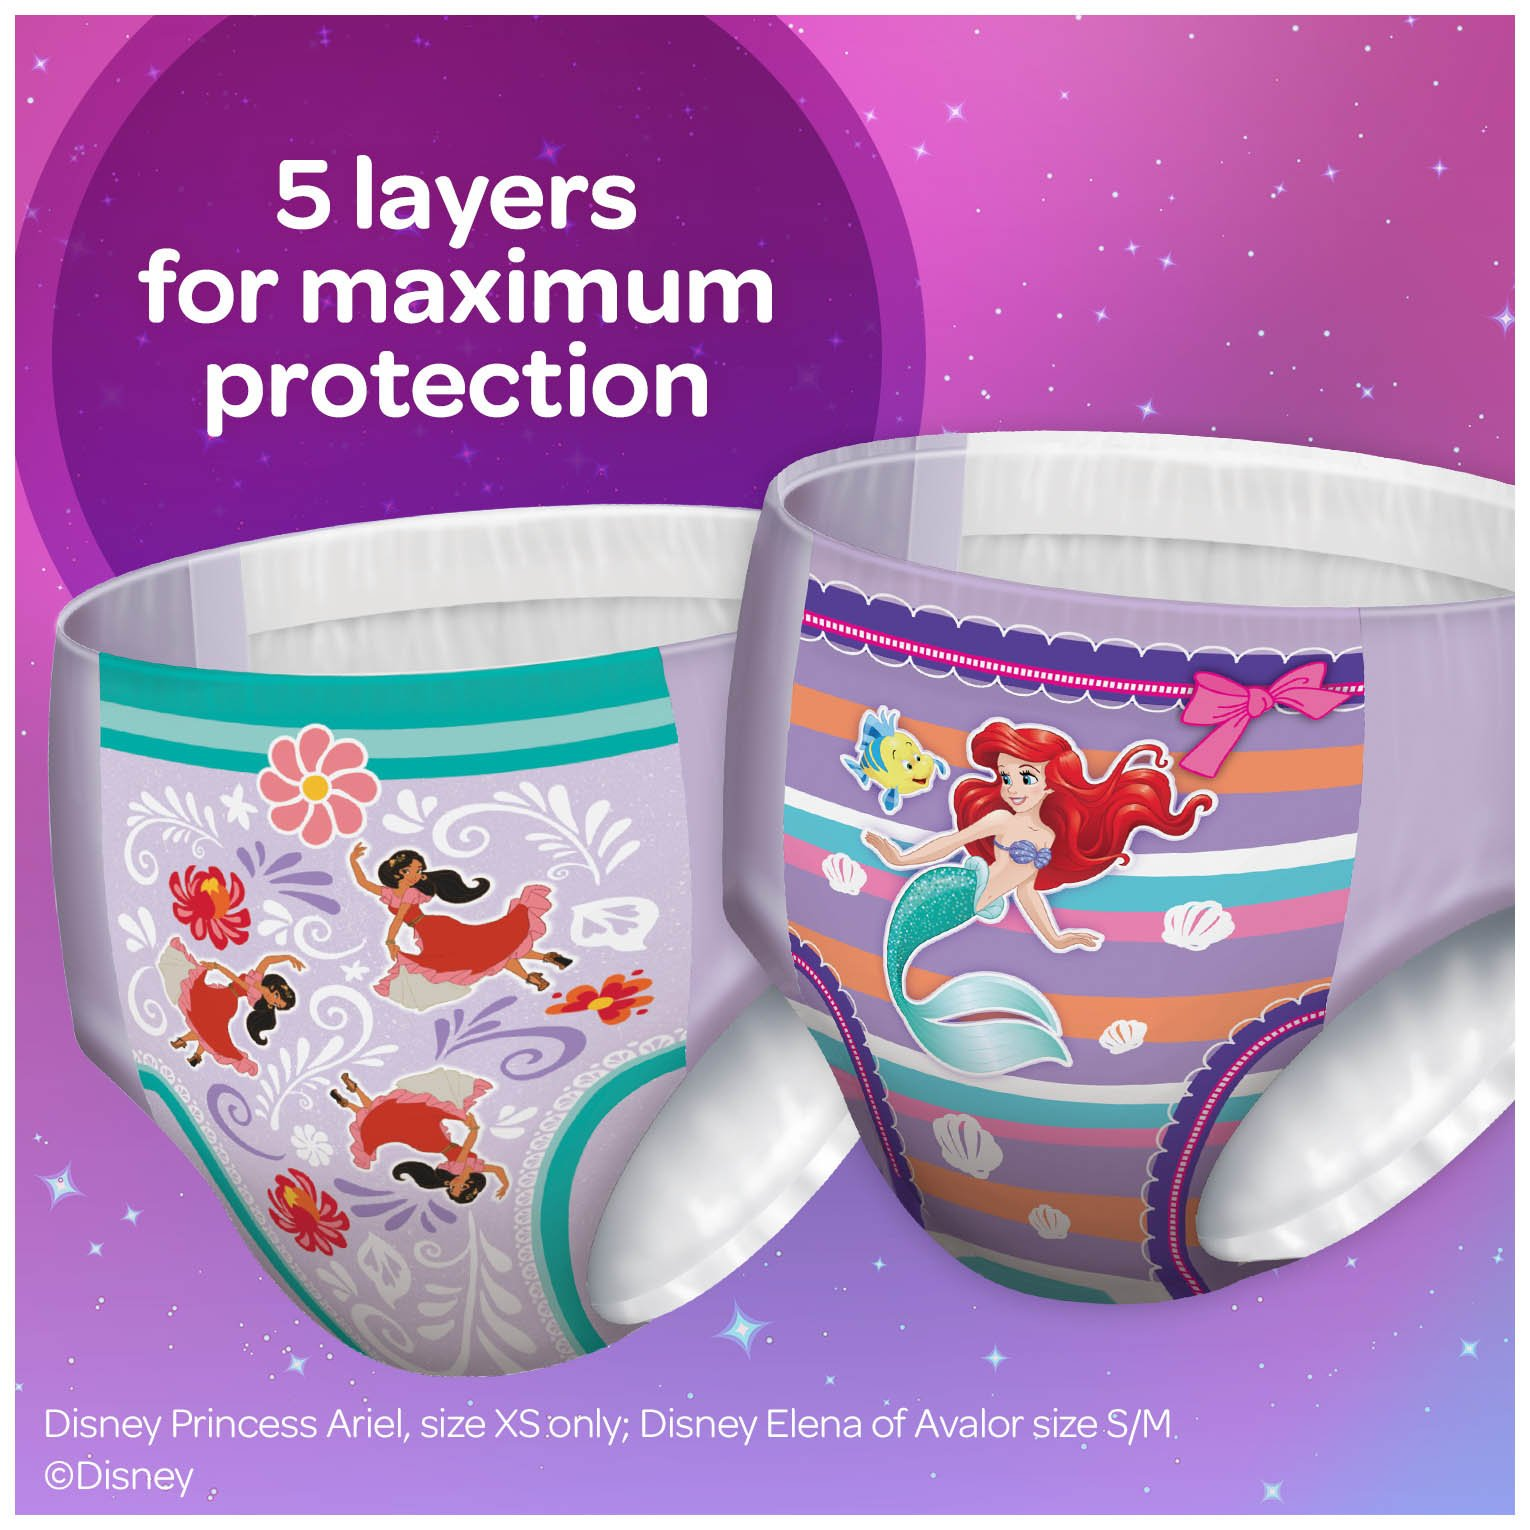 GoodNites Bedtime Bedwetting Underwear for Girls, XS, 15 Ct. (Packaging May Vary) by GoodNites (Image #5)